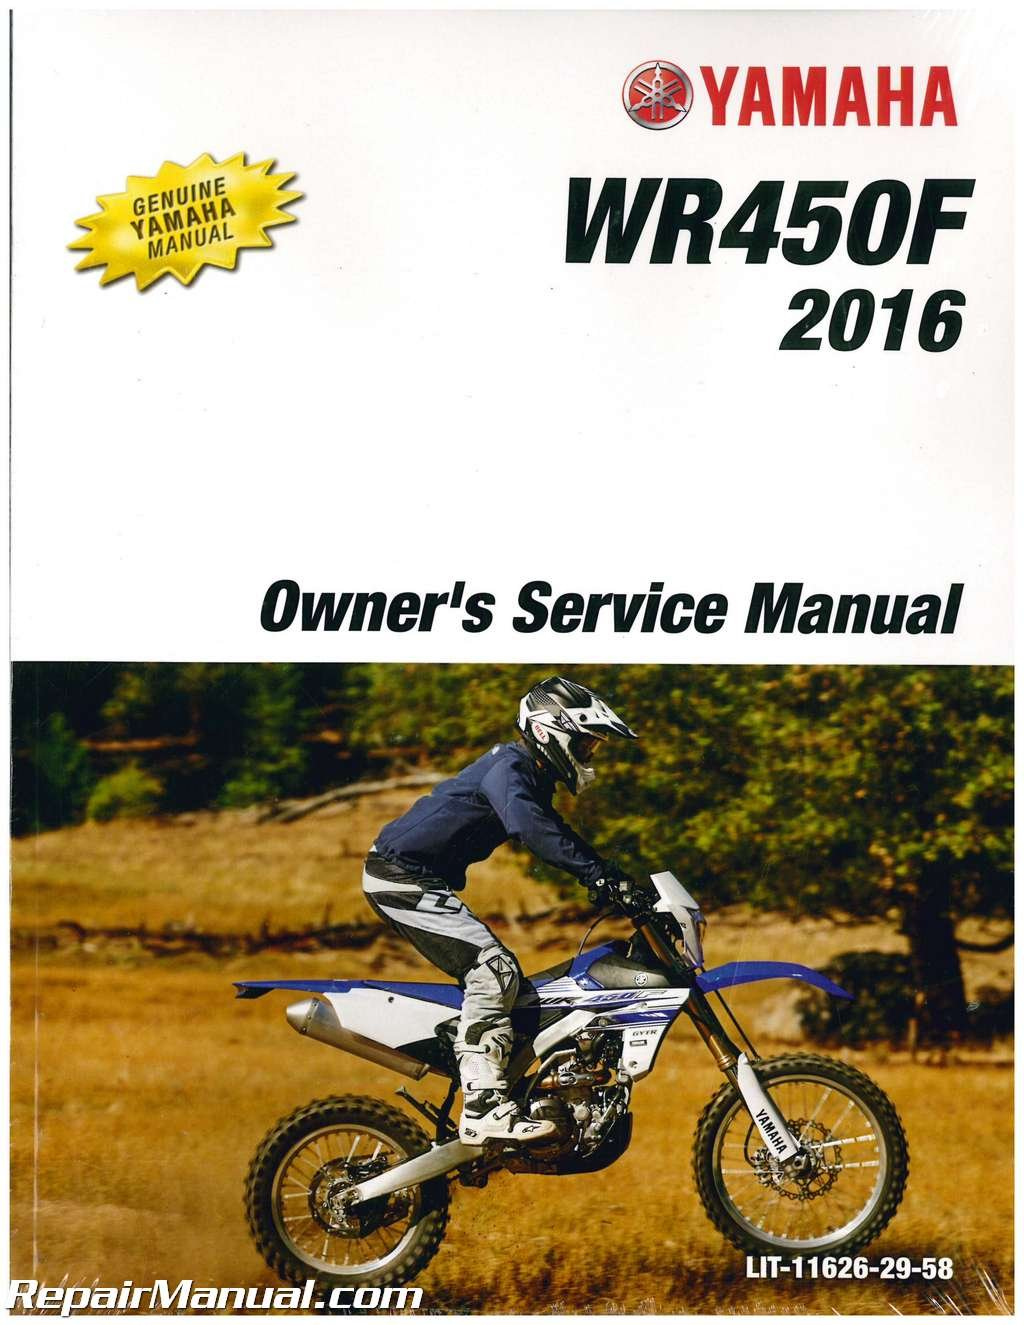 LIT-11626-29-58 2016 Yamaha WR450F Motorcycle Owners Service Manual:  Manufacturer: Amazon.com: Books